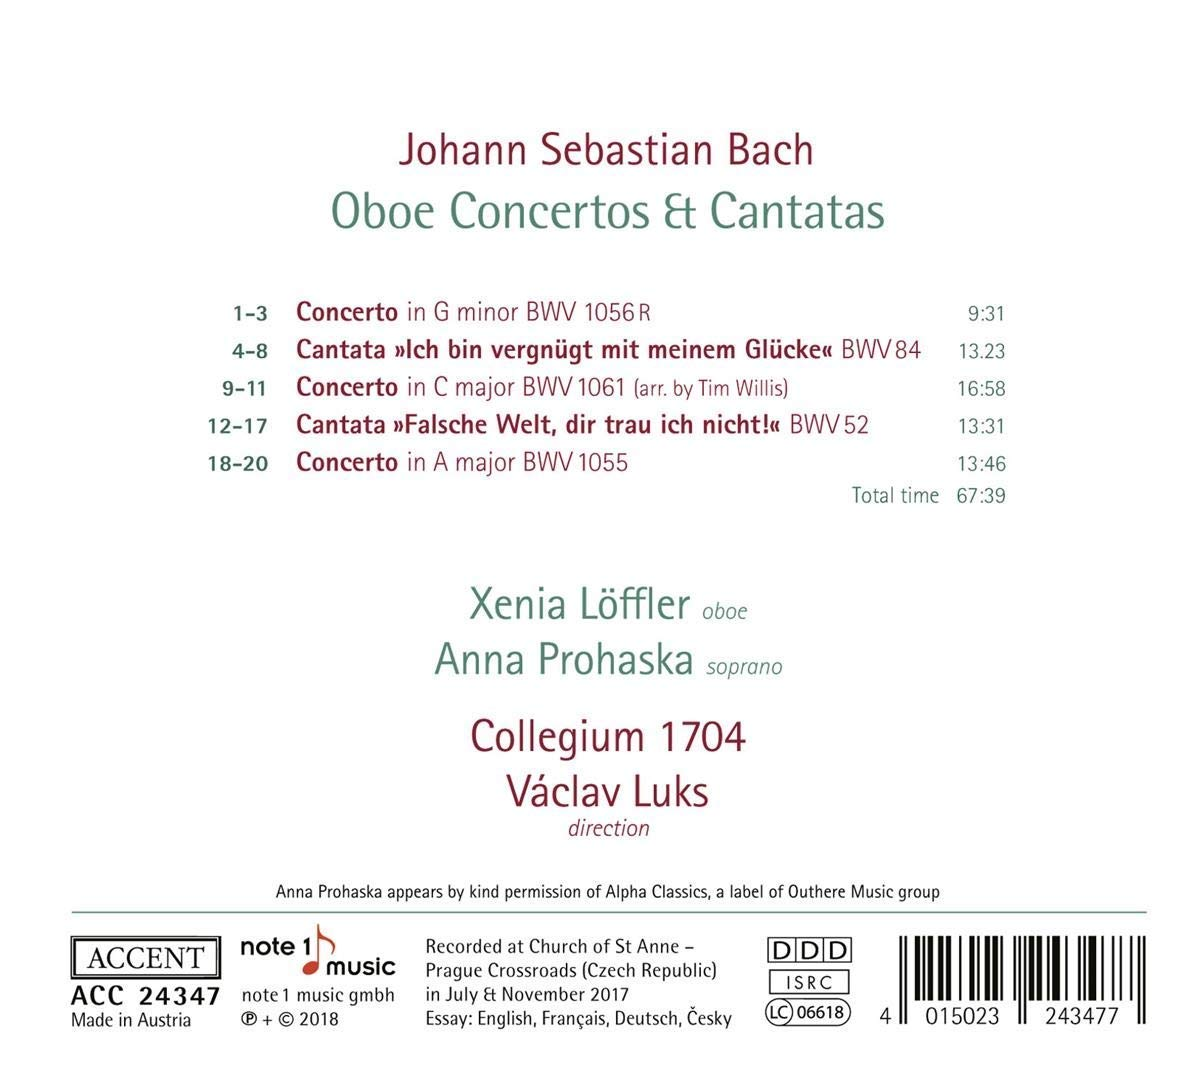 Vaclav Luks & Collegium 1704 - Bach Cantatas & Other Vocal Works